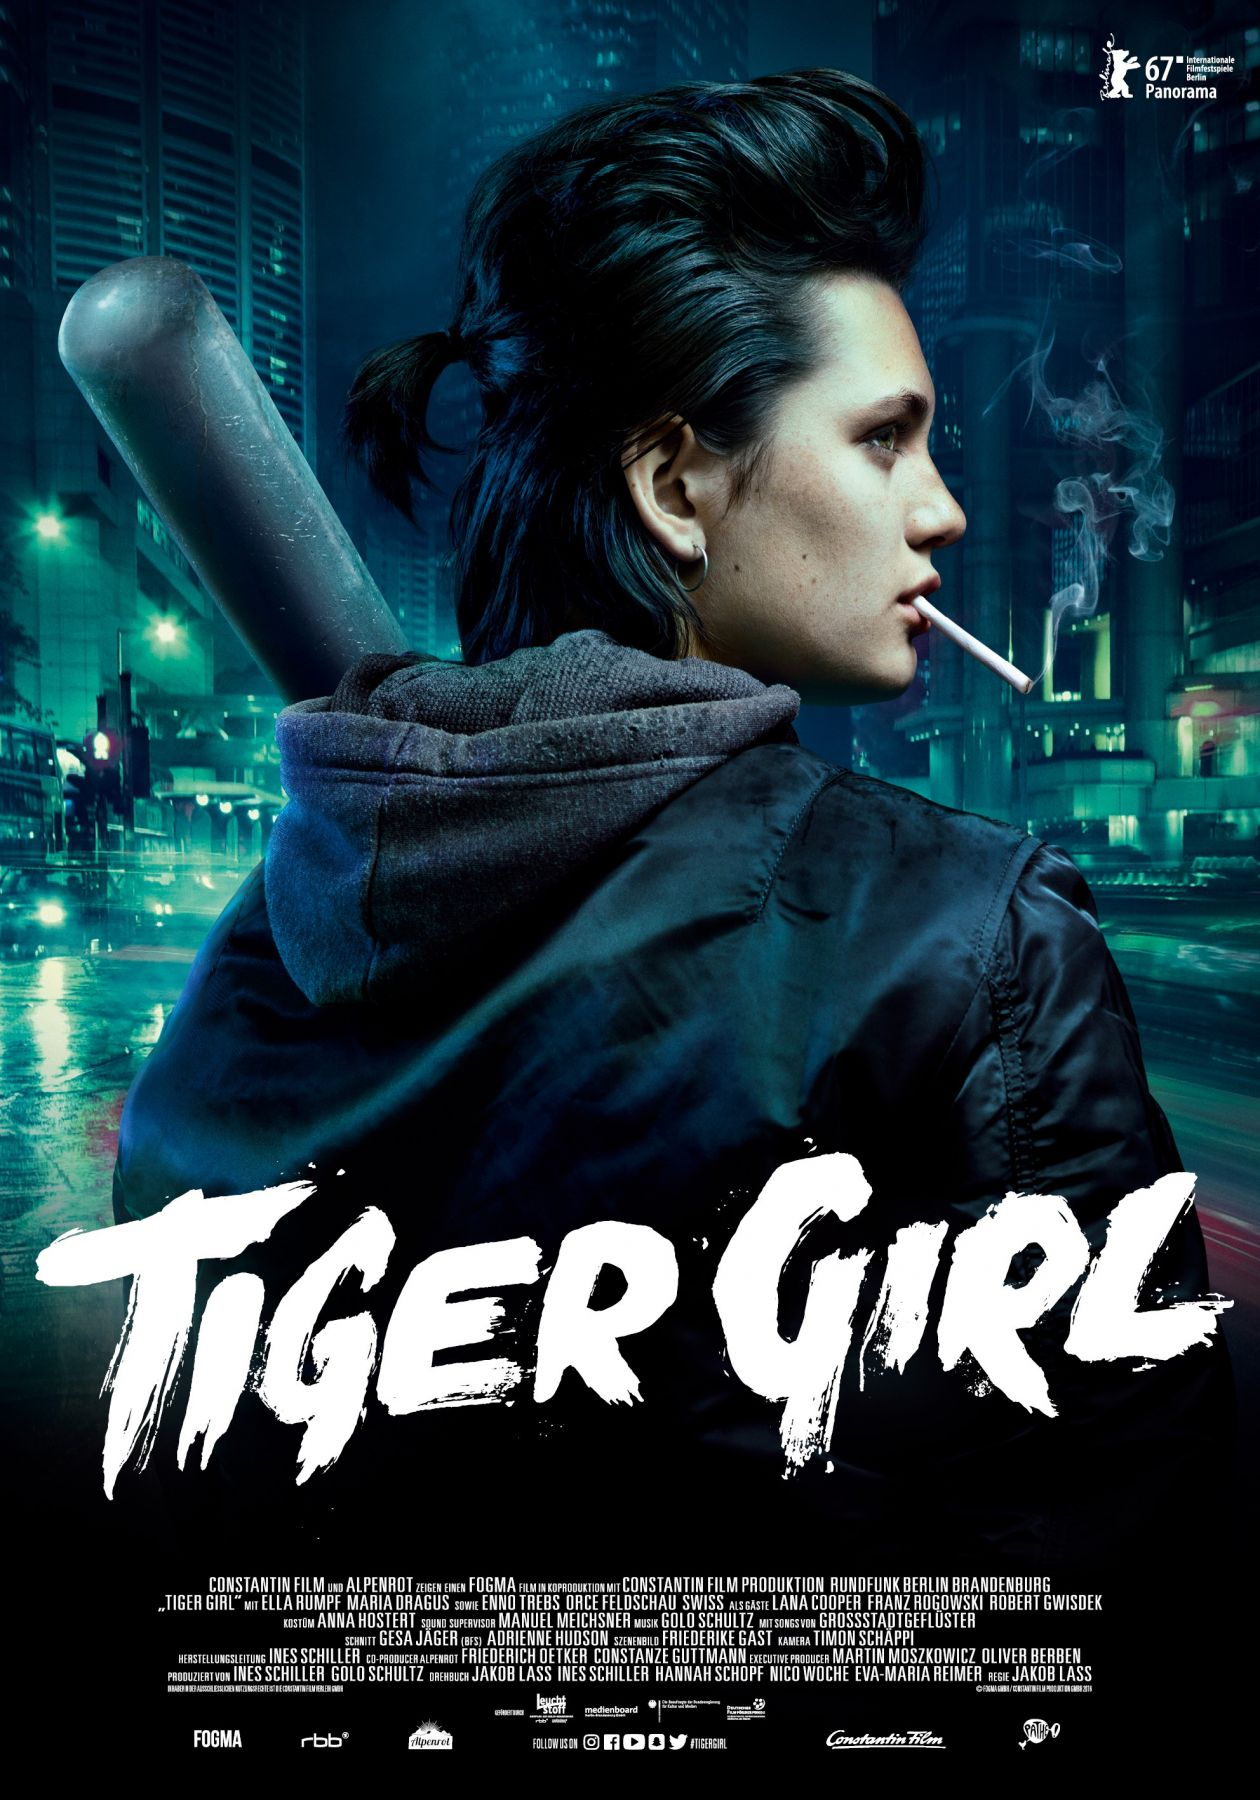 Ella Rumpf actress | Tiger Girl / Jakob Lass 2017 / Movie Poster Affiche film